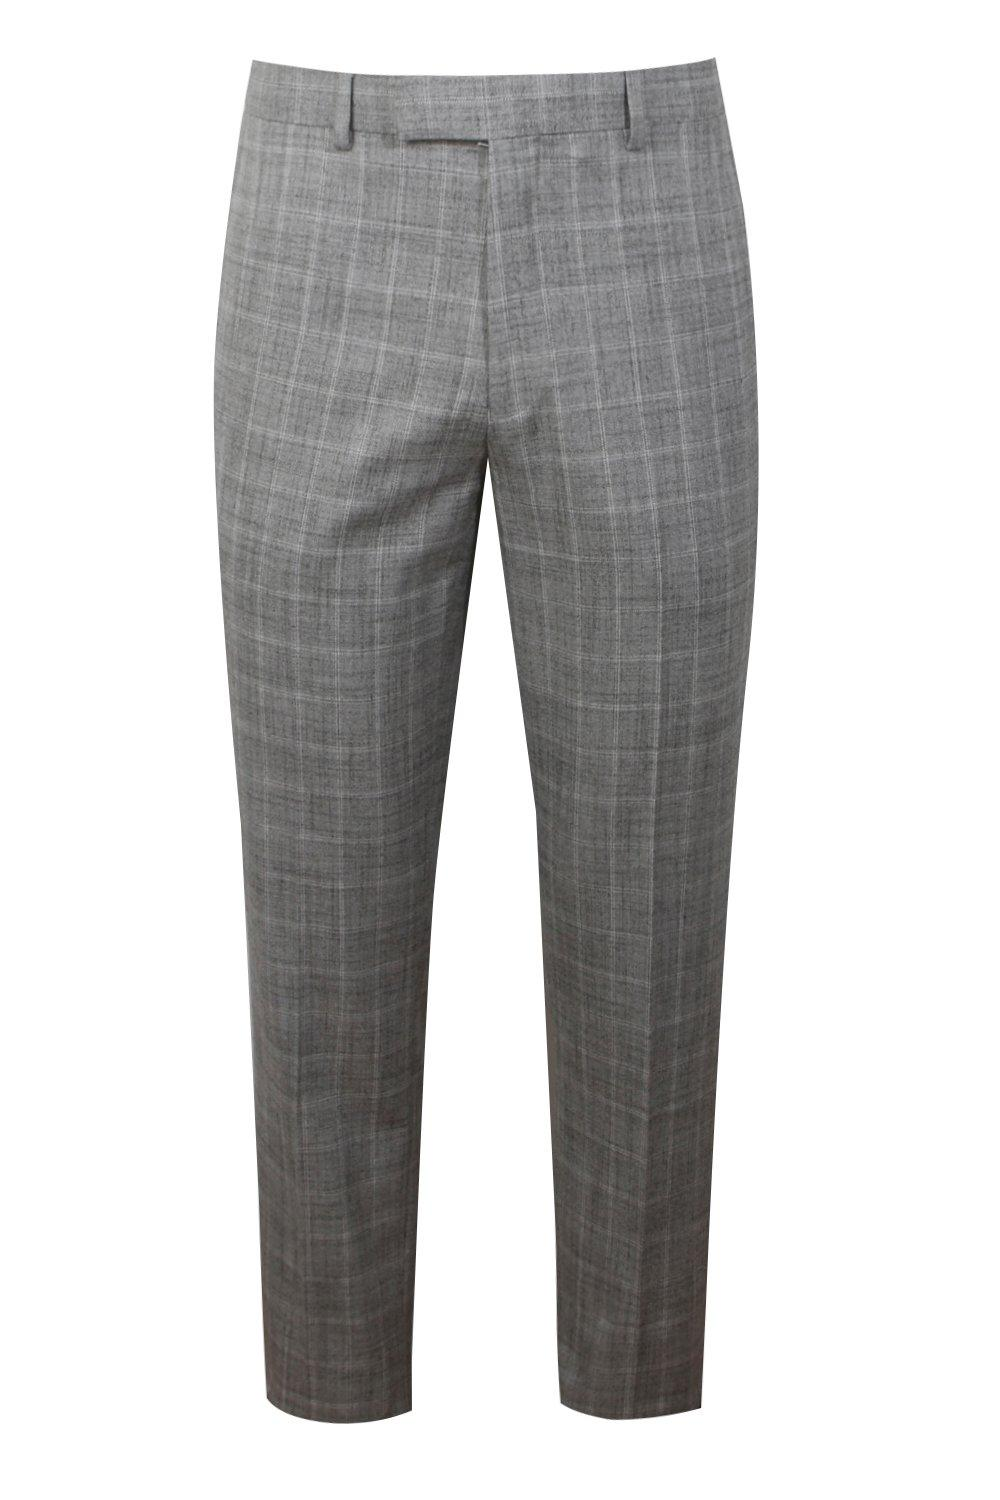 boohooMAN light grey Textured Check Skinny Fit Suit Trouser